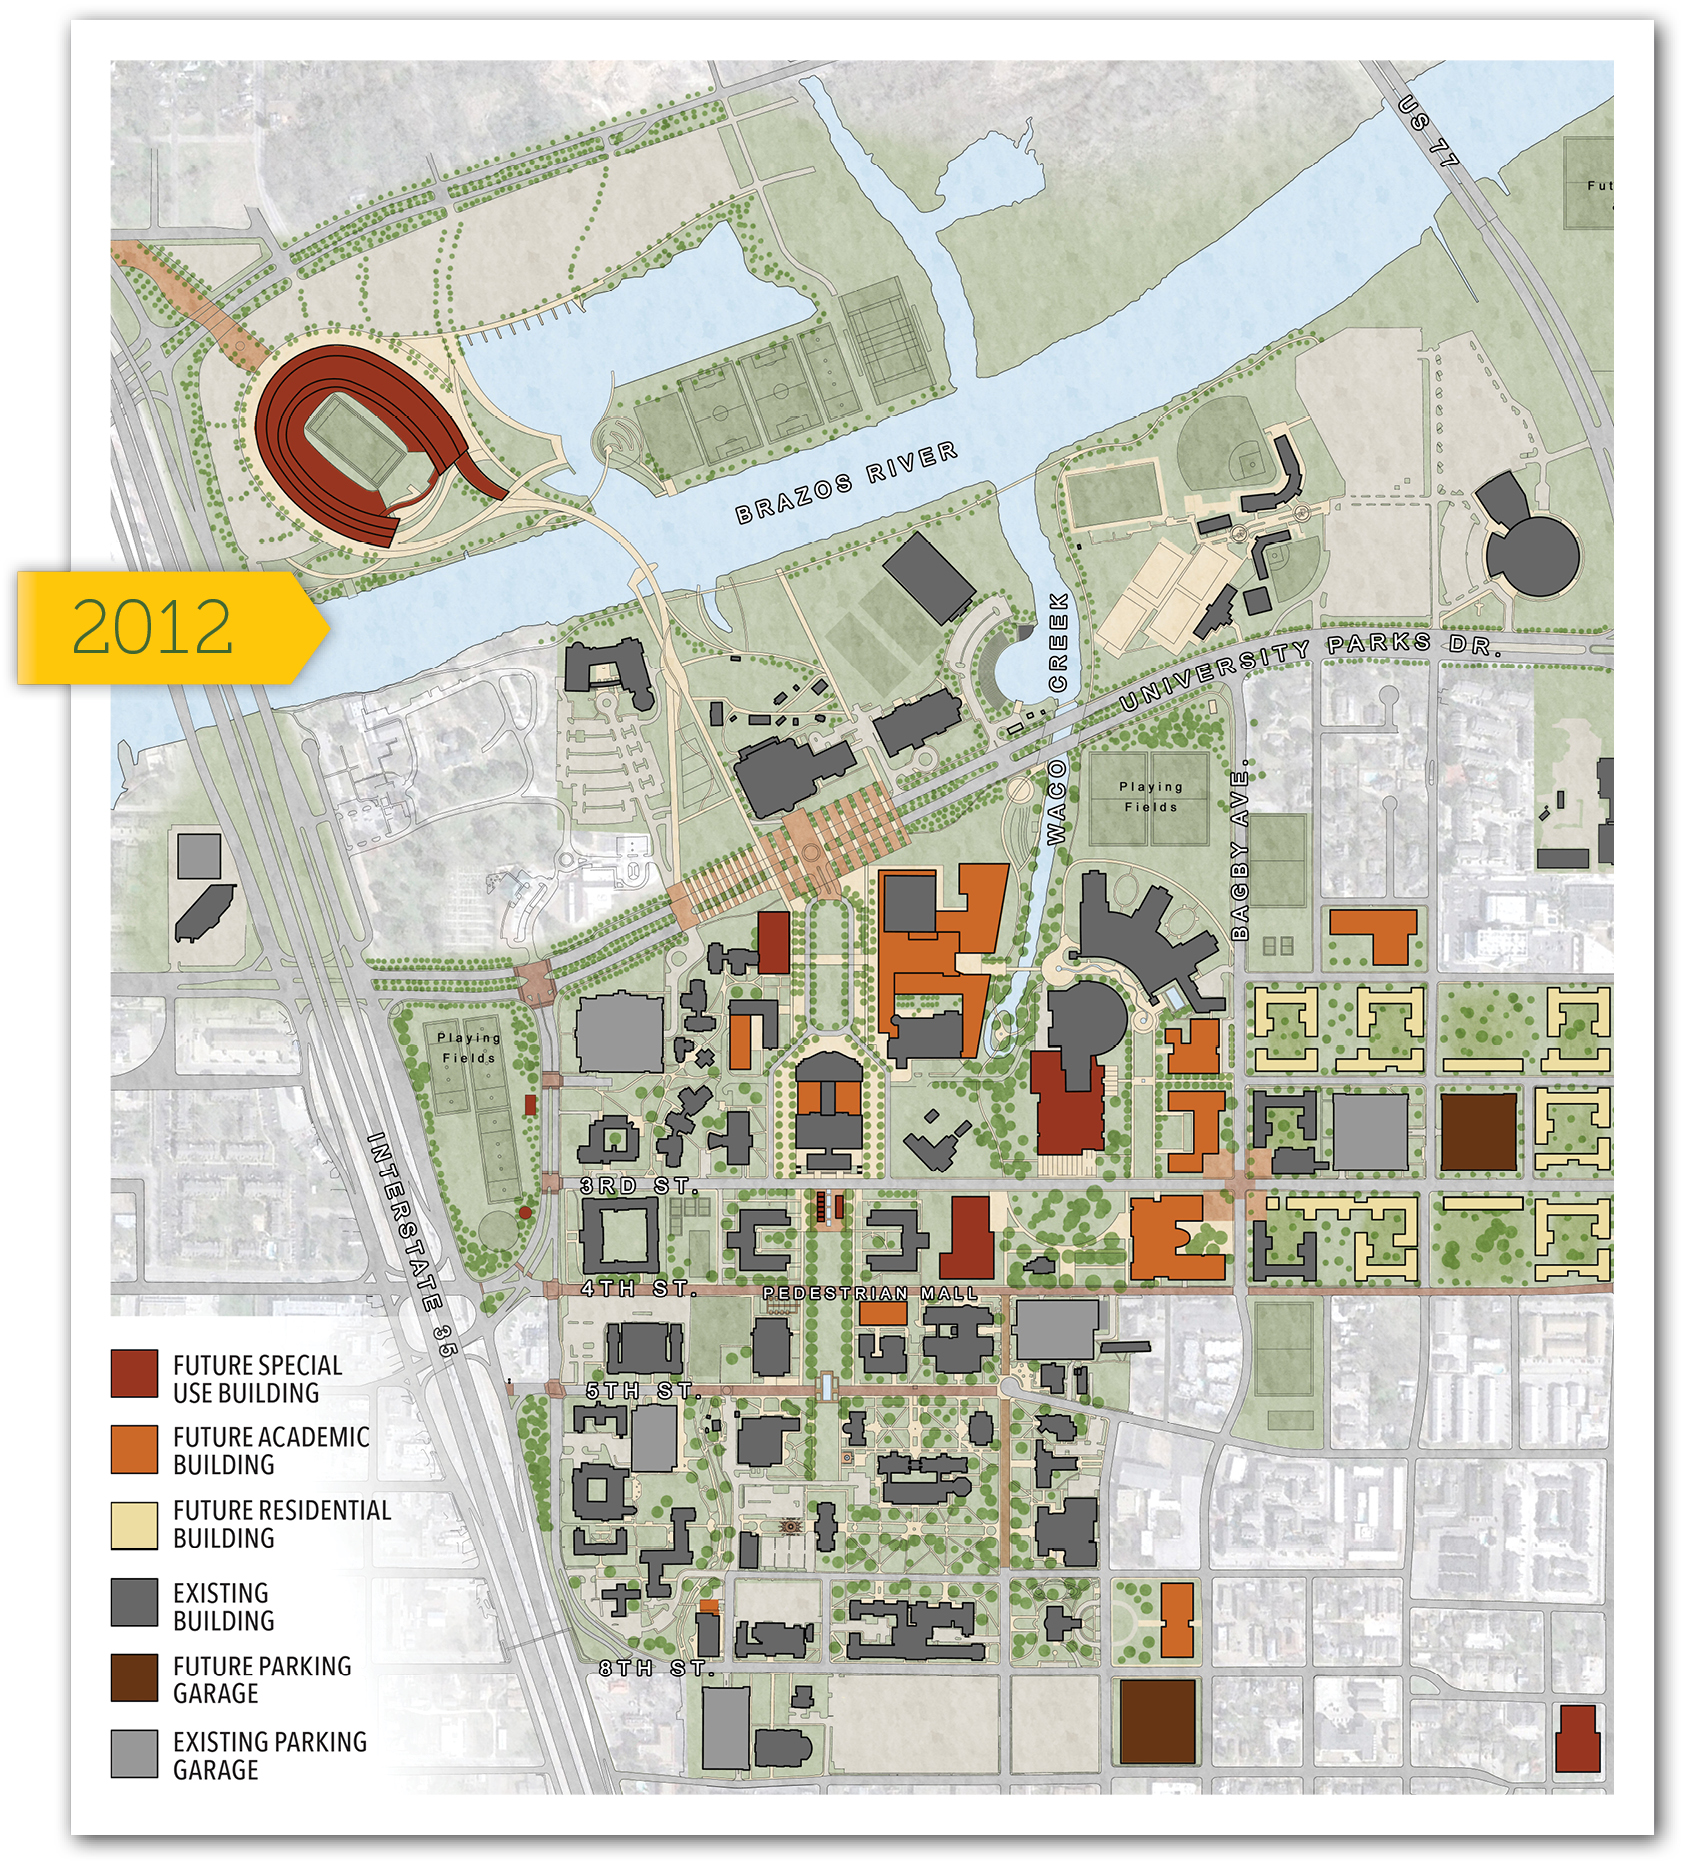 Baylor University Campus Map Dreaming of What's Next | Baylor Magazine, Fall 2013 | Baylor